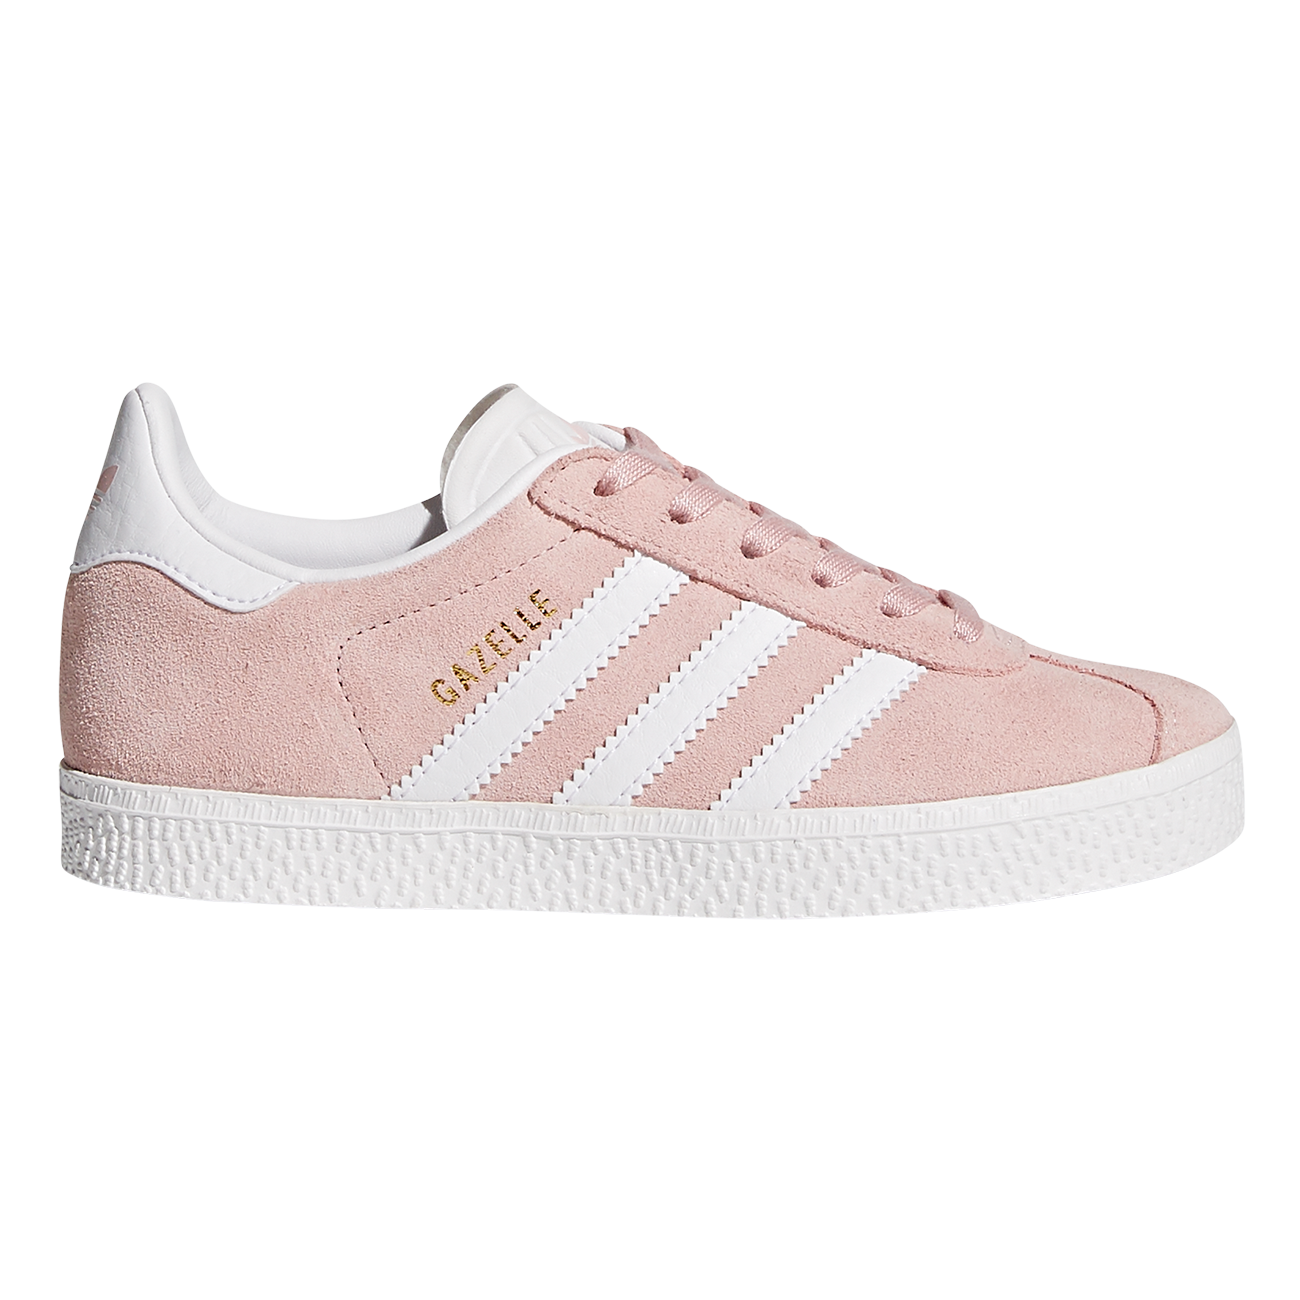 pretty nice 862ca ef4fd ... spain adidas gazelle sneakers ice pink white d33c2 7f1cc